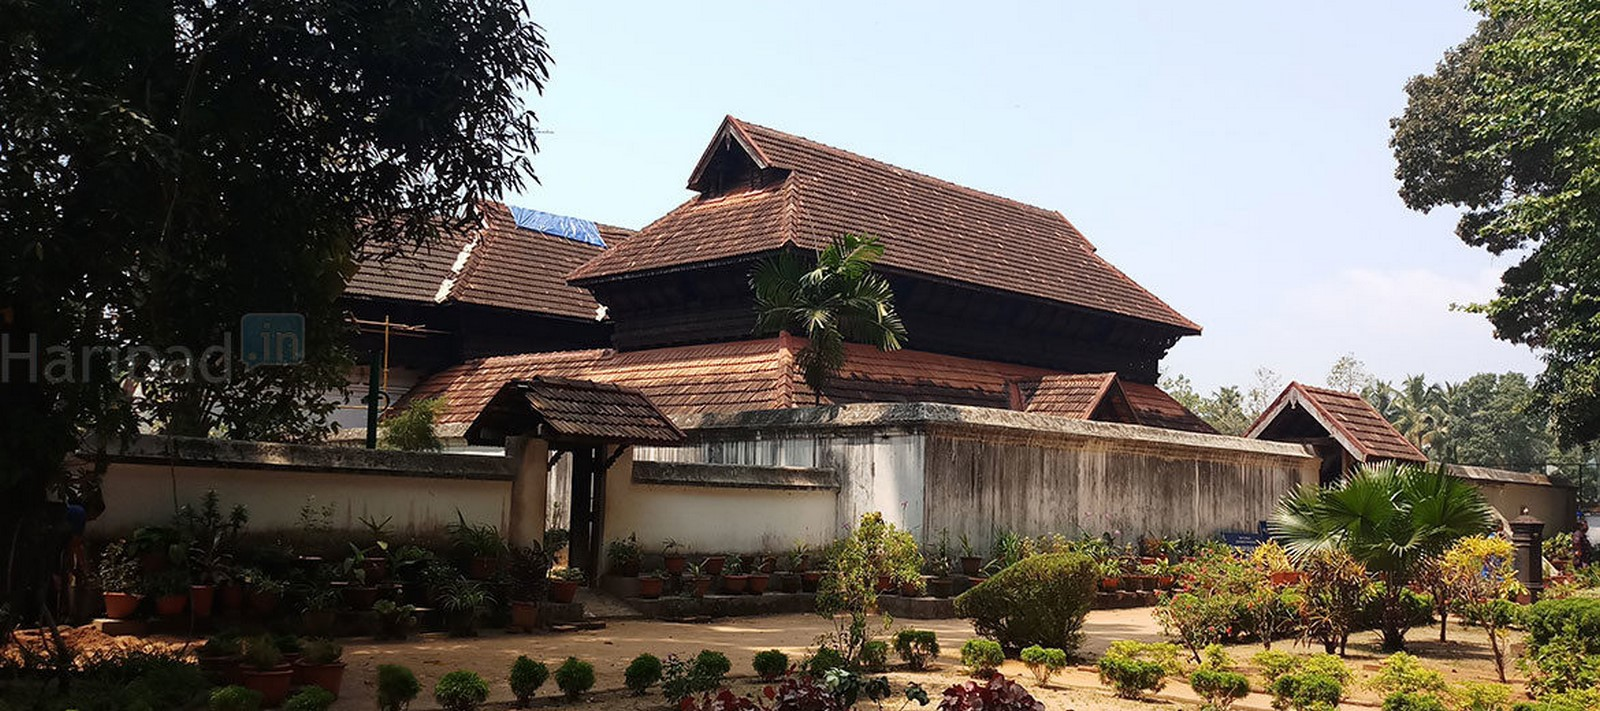 The Architectural Heritage of Kerala - Sheet4